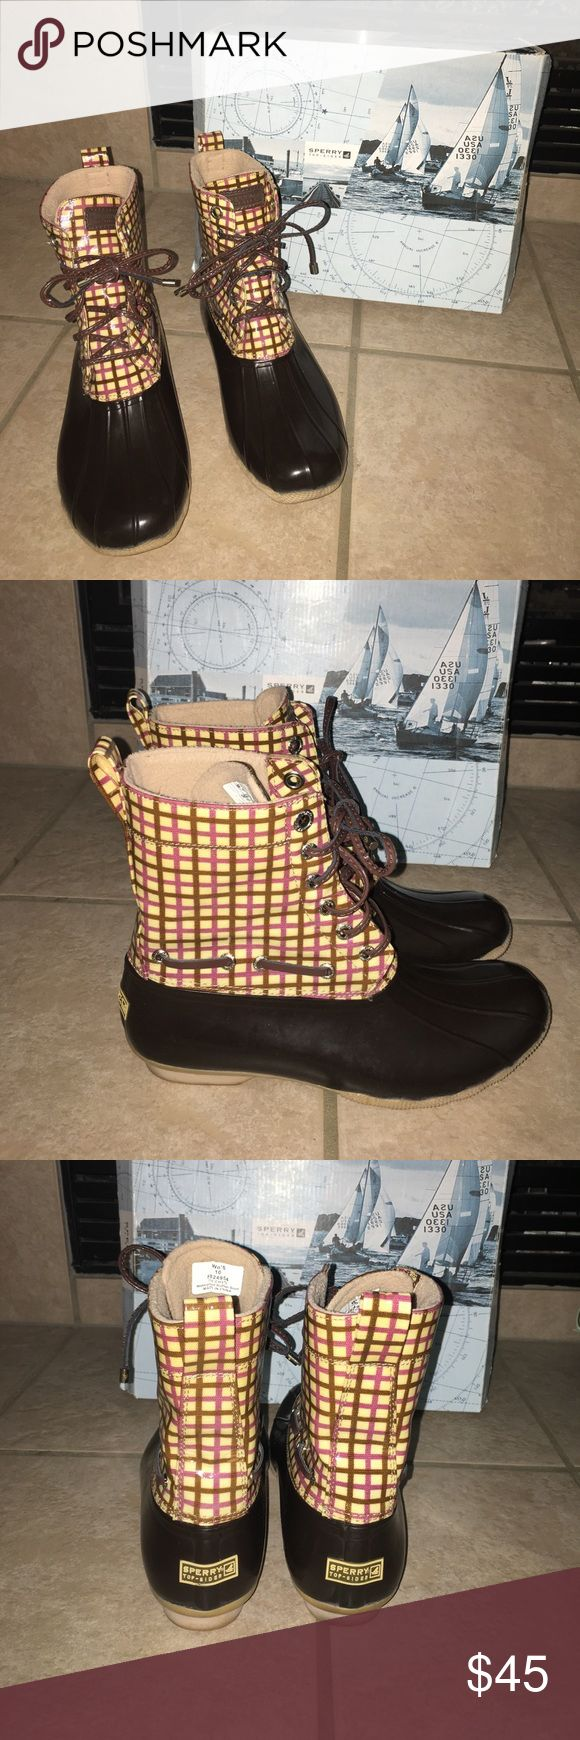 🆕 Listing Sperry Top Sider boots Gently used boots in great condition. Worn a few times. Very comfortable boot. Sperry Top-Sider Shoes Winter & Rain Boots